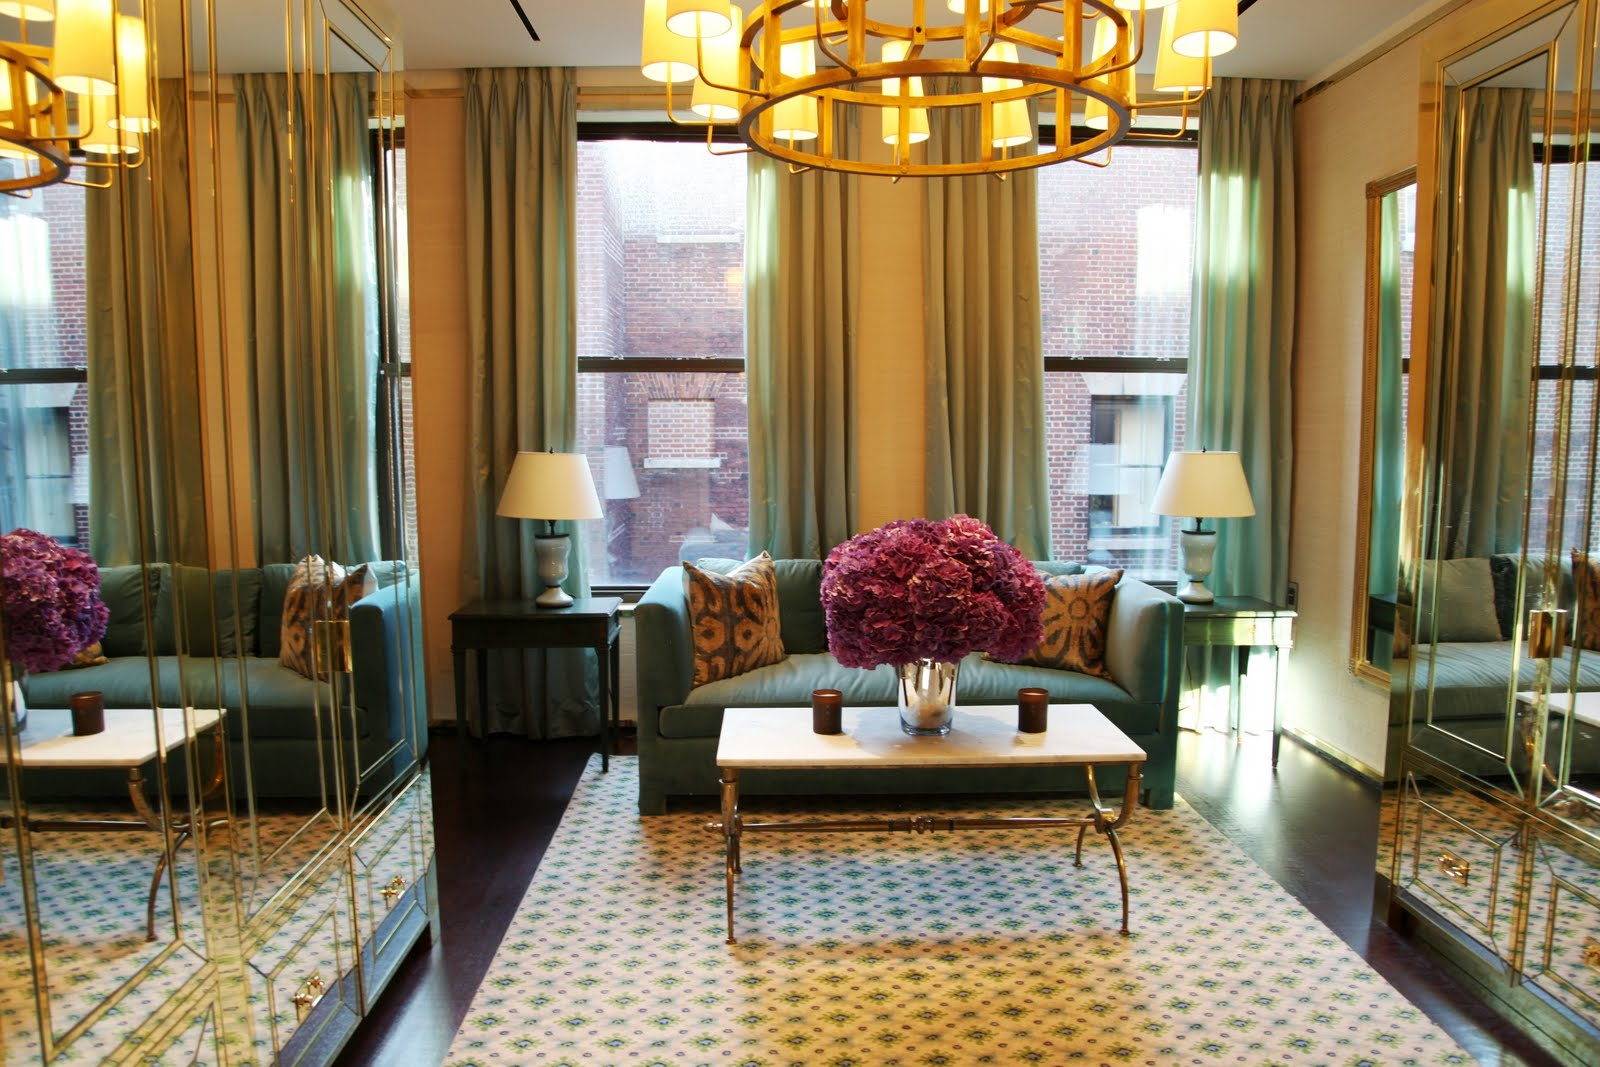 Tory burch madison avenue part 1 ellegant home design for Home decor stores in nyc